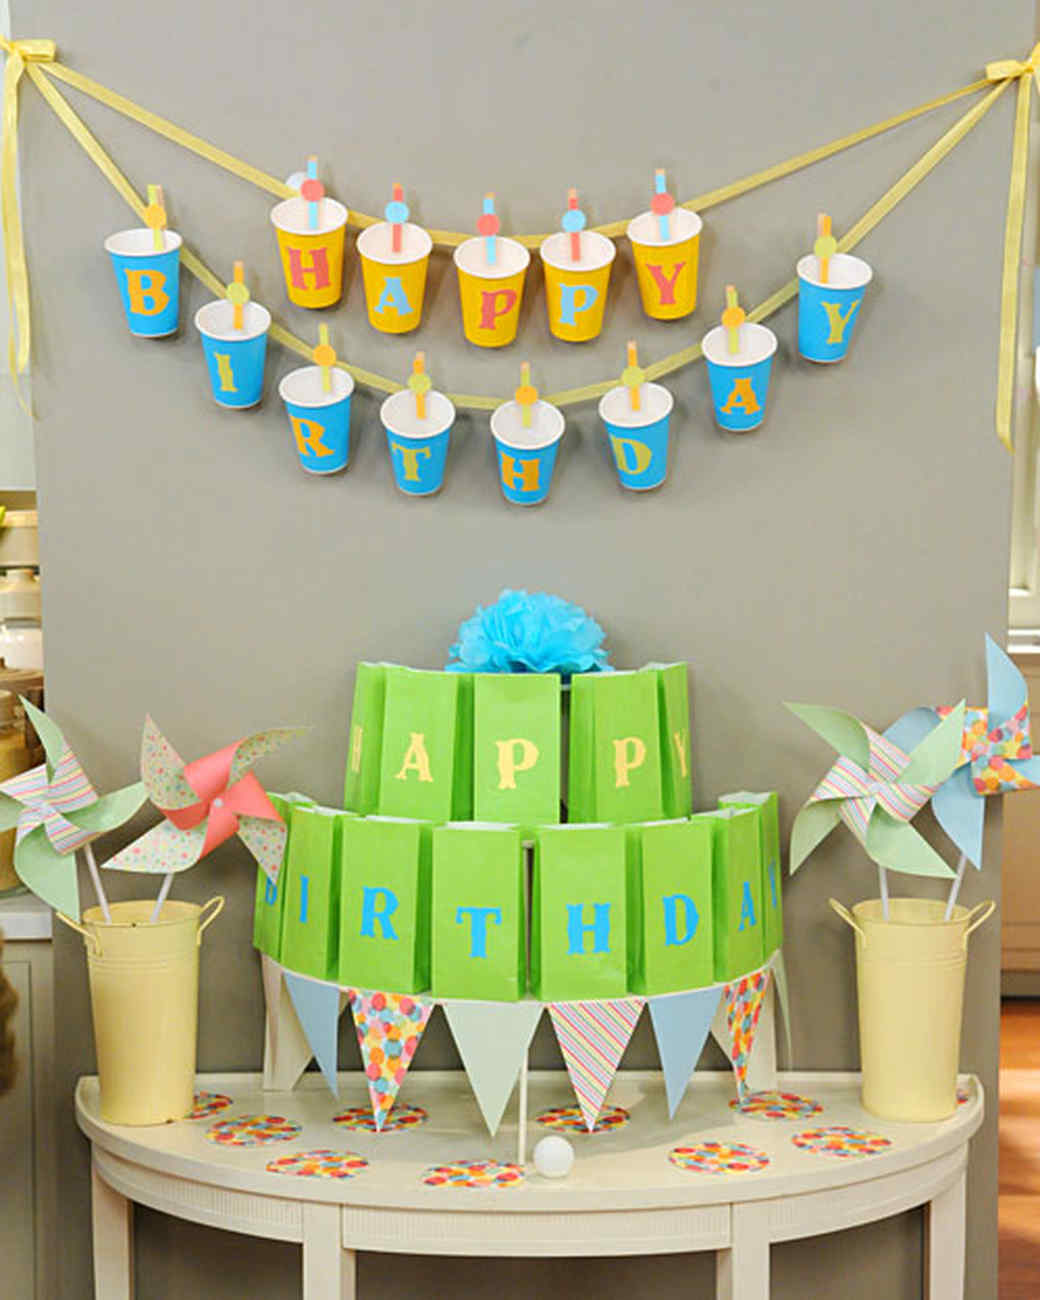 december birthday party ideas